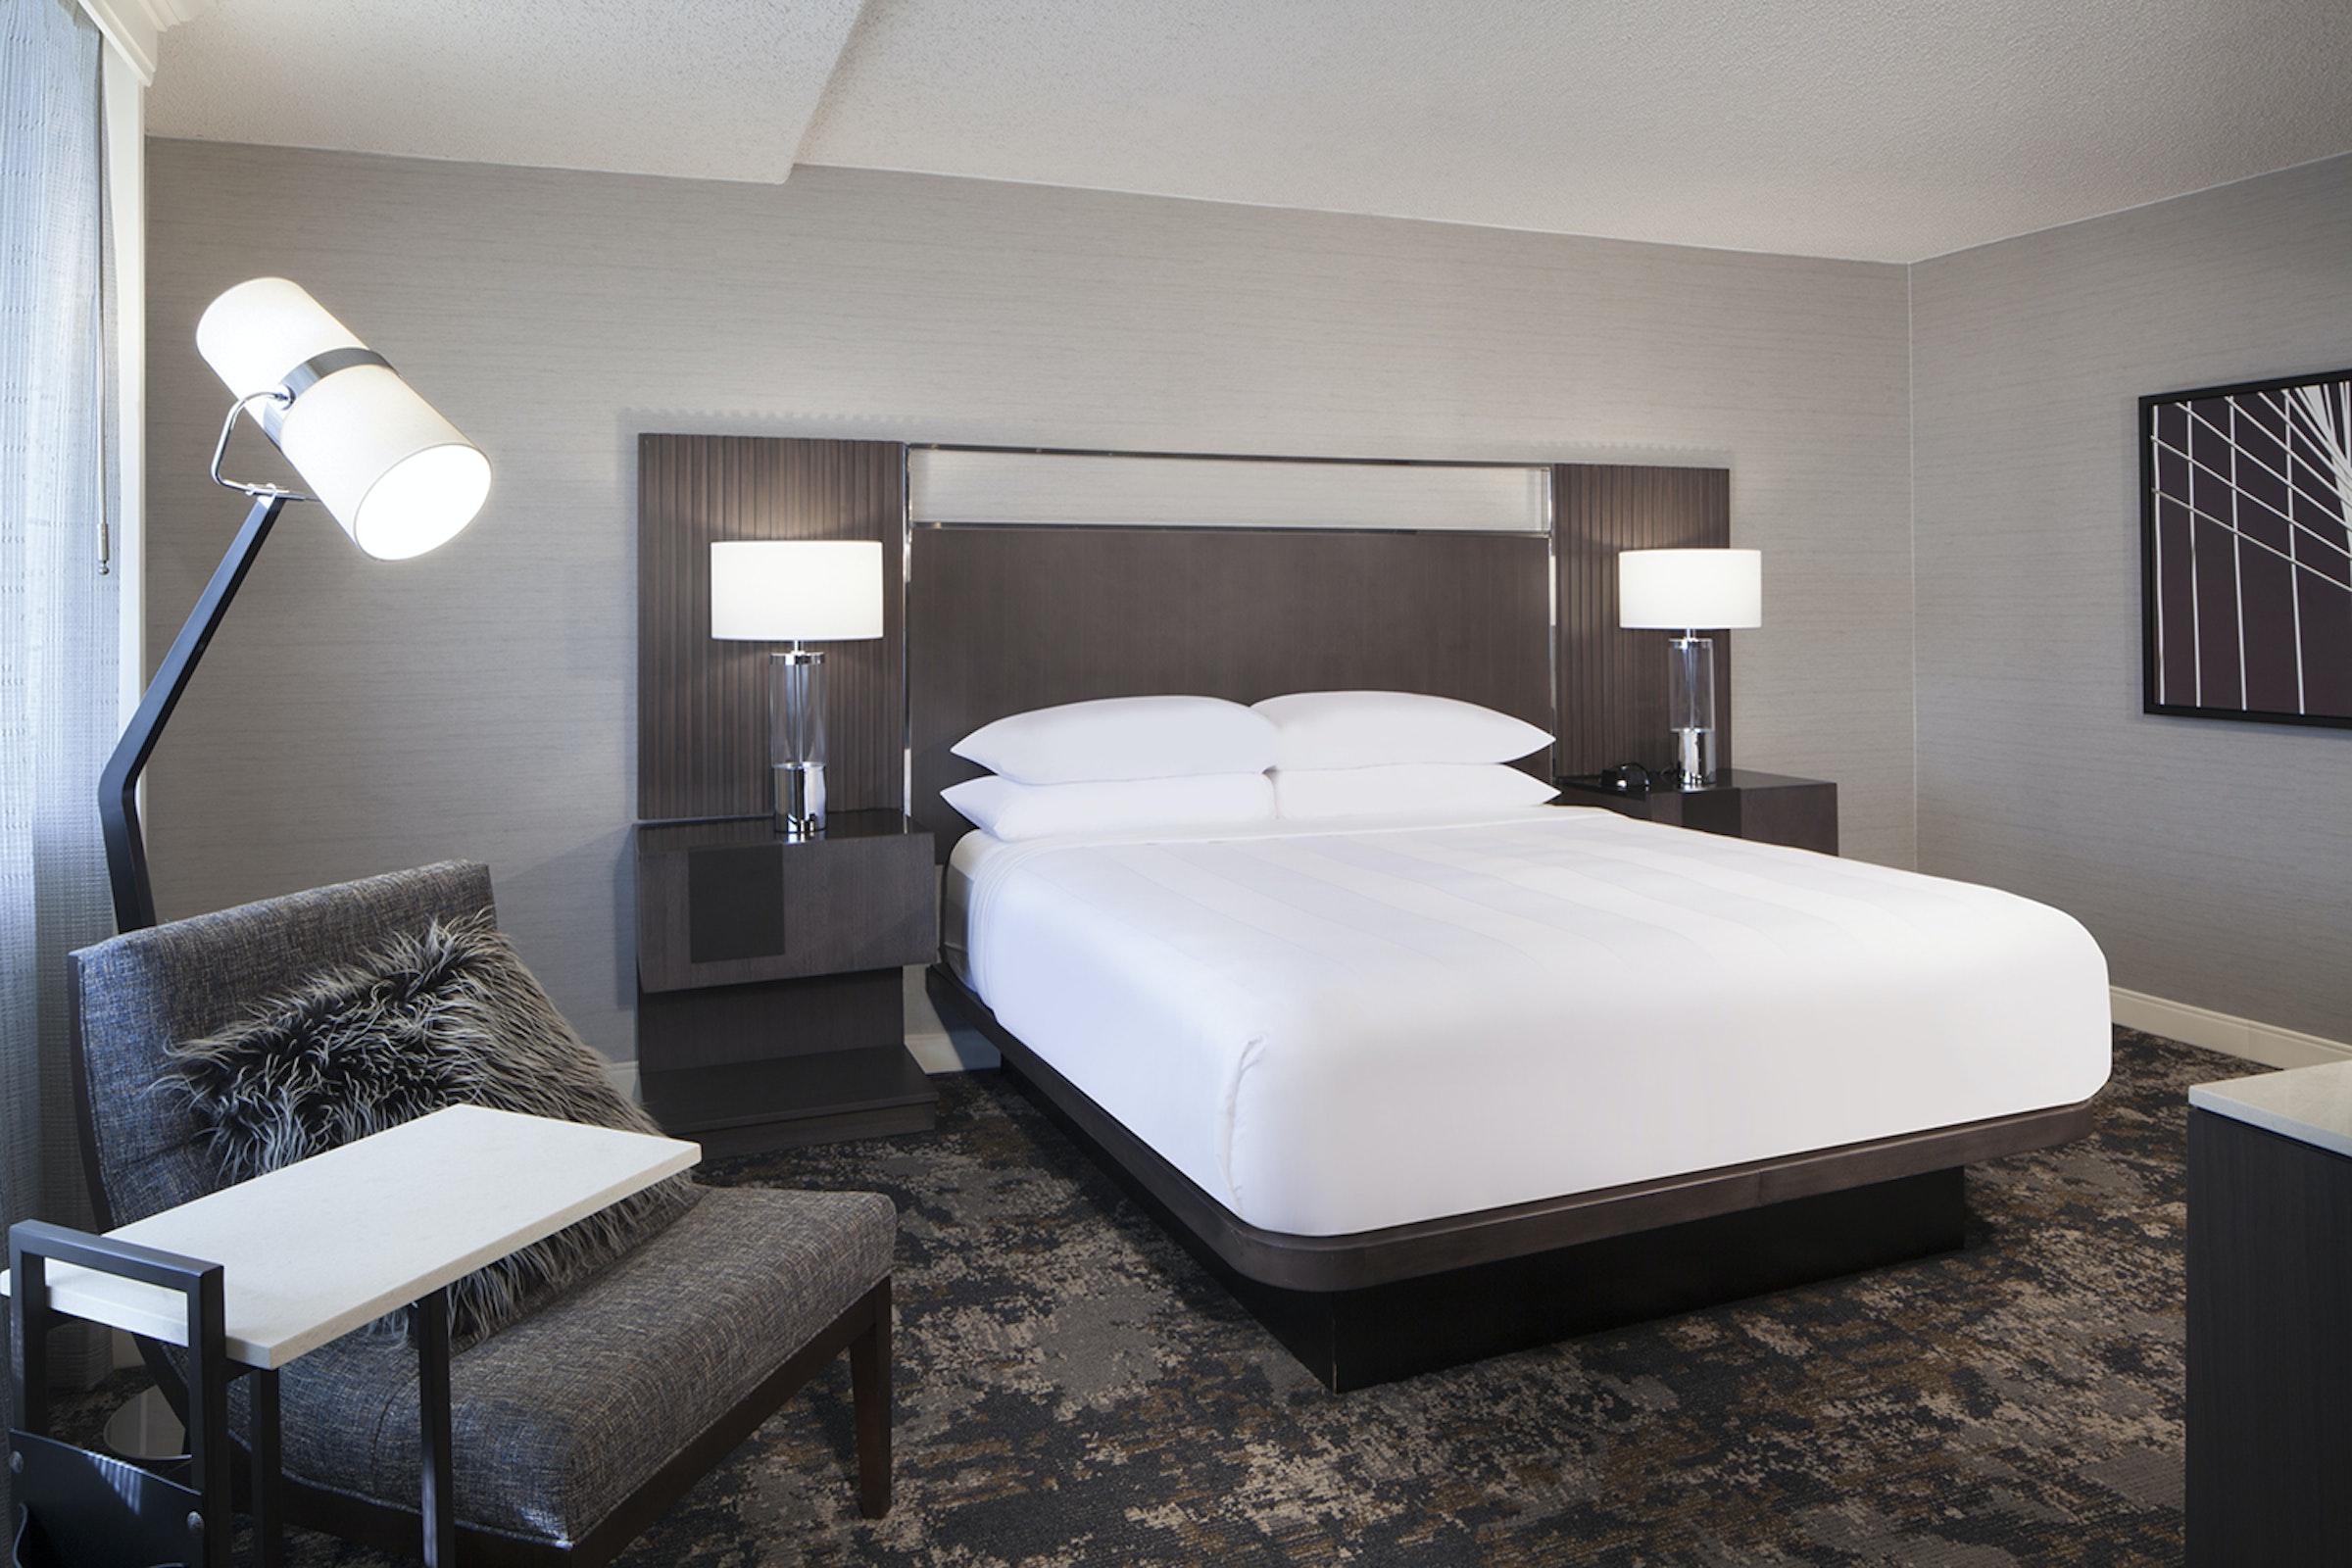 Dallas/Fort Worth Airport Marriott in Beyond Dallas